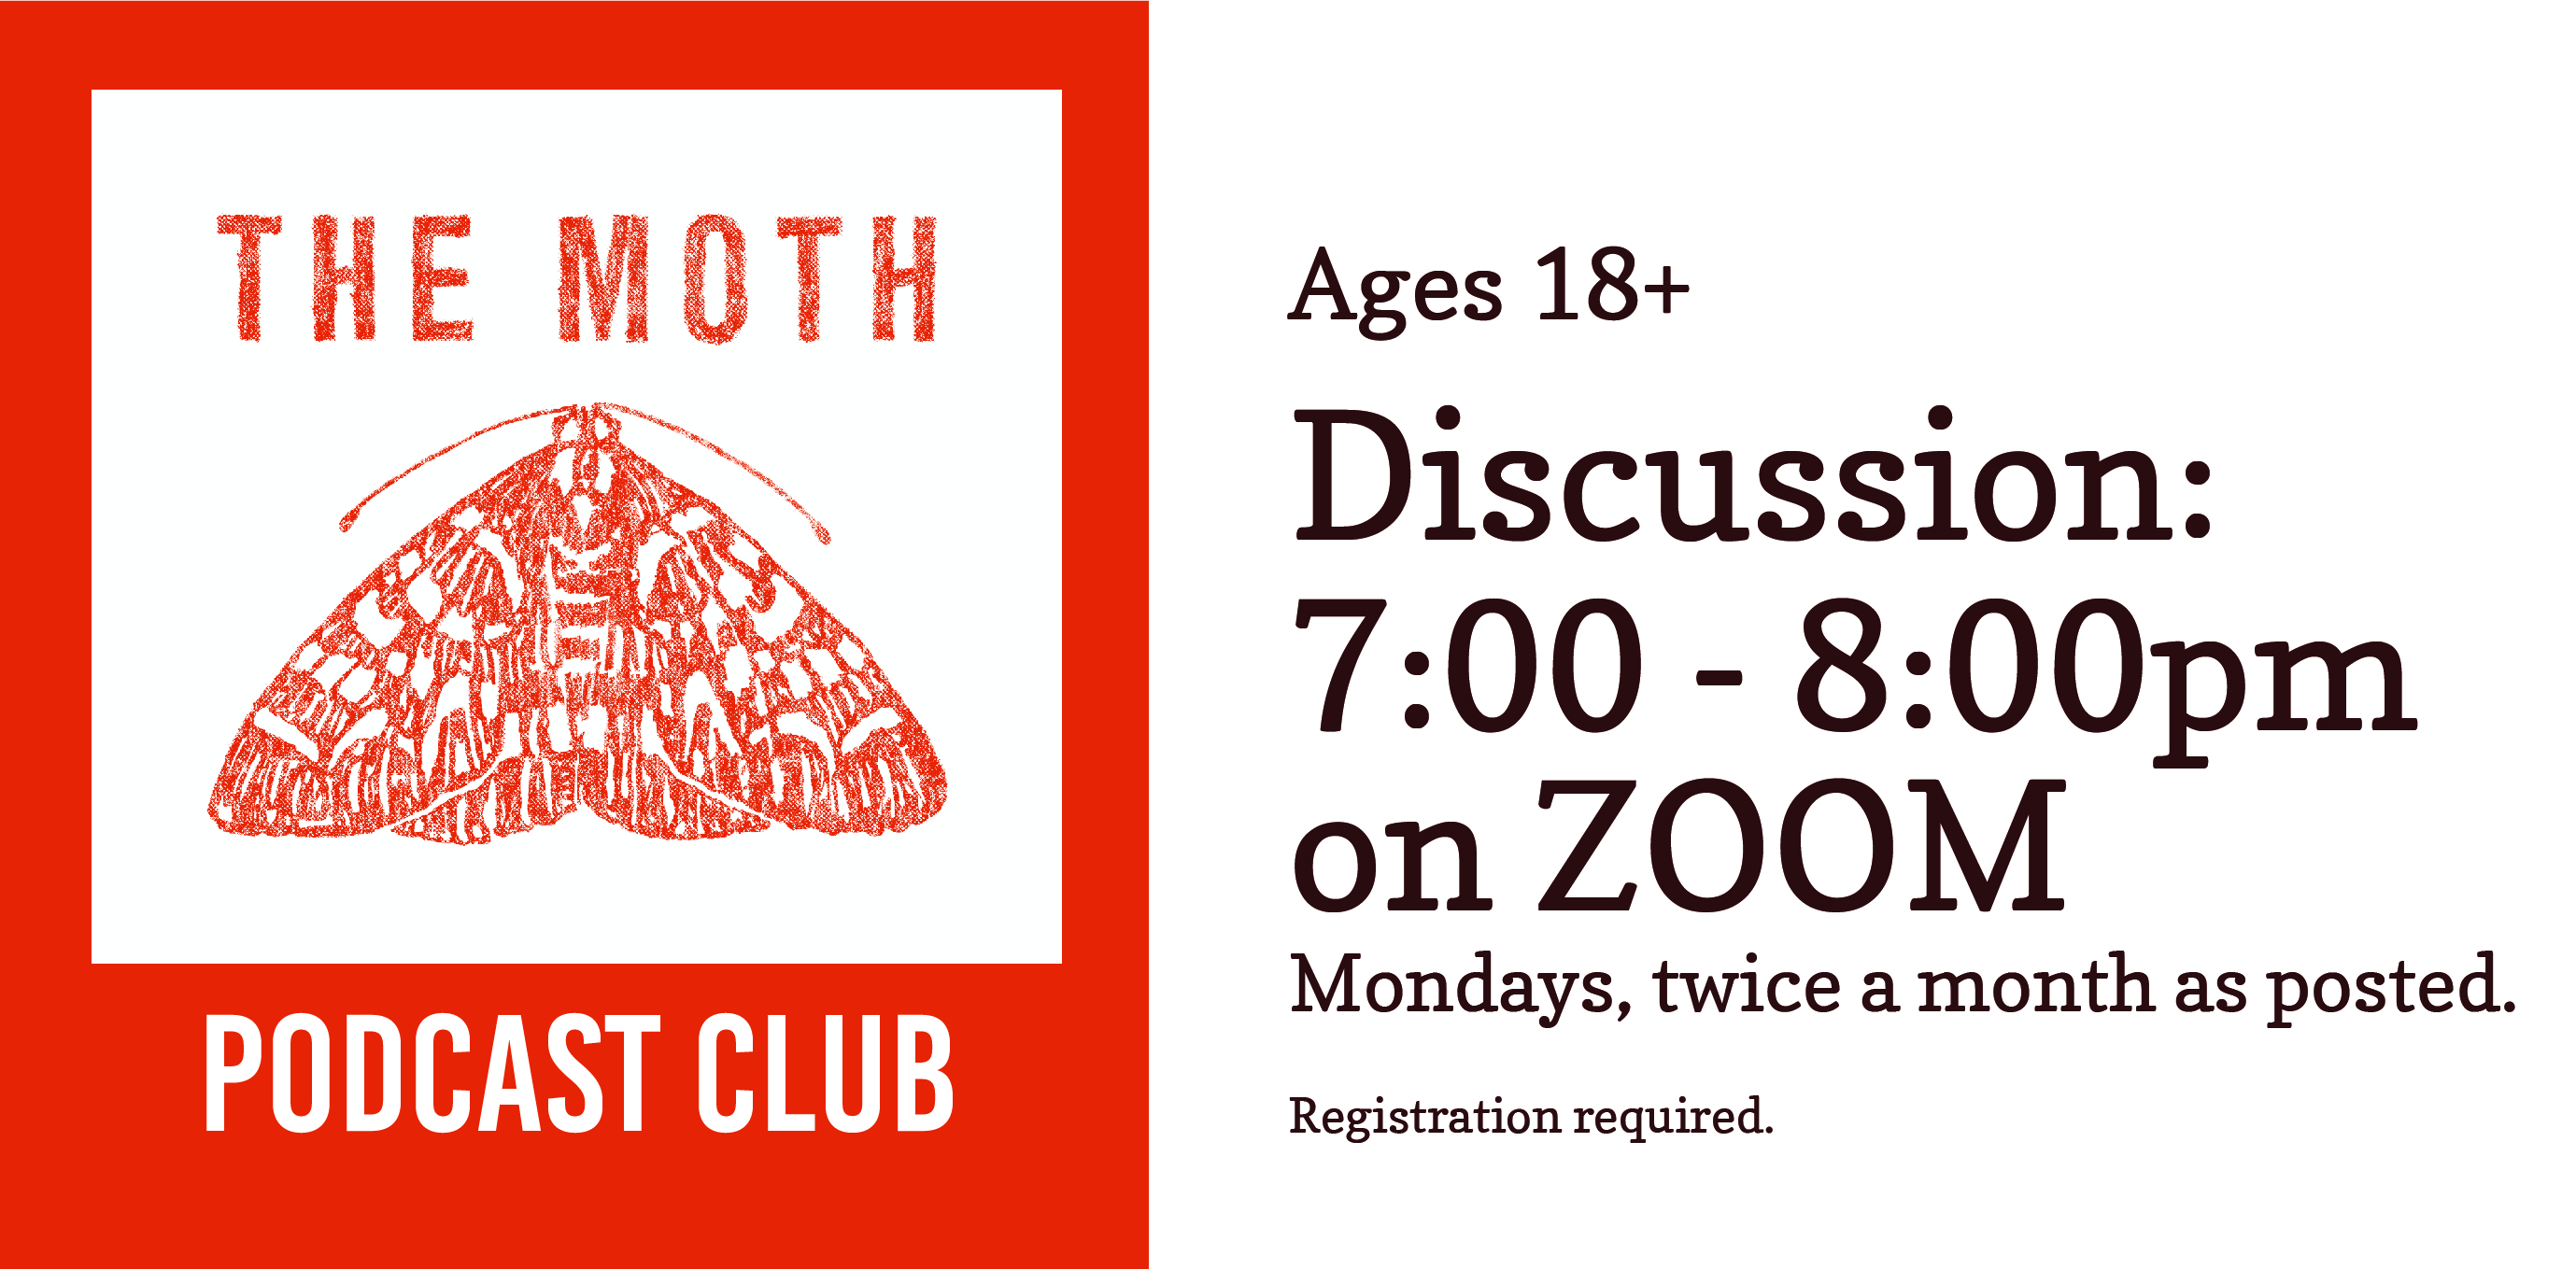 The Moth Podcast Club